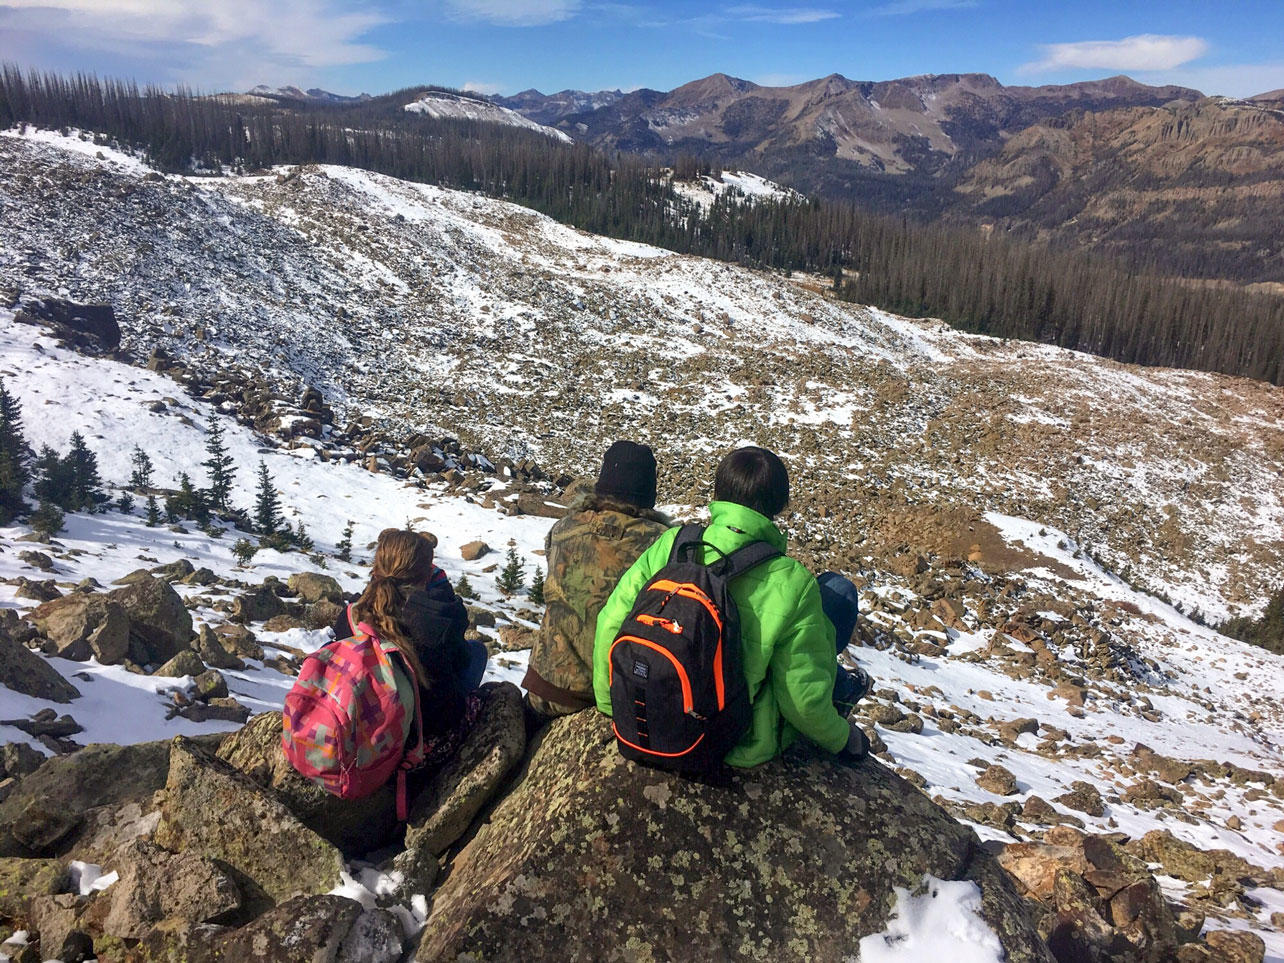 Pagosa Peak Open School students monitoring pikas in San Juan National Forest, Colorado.